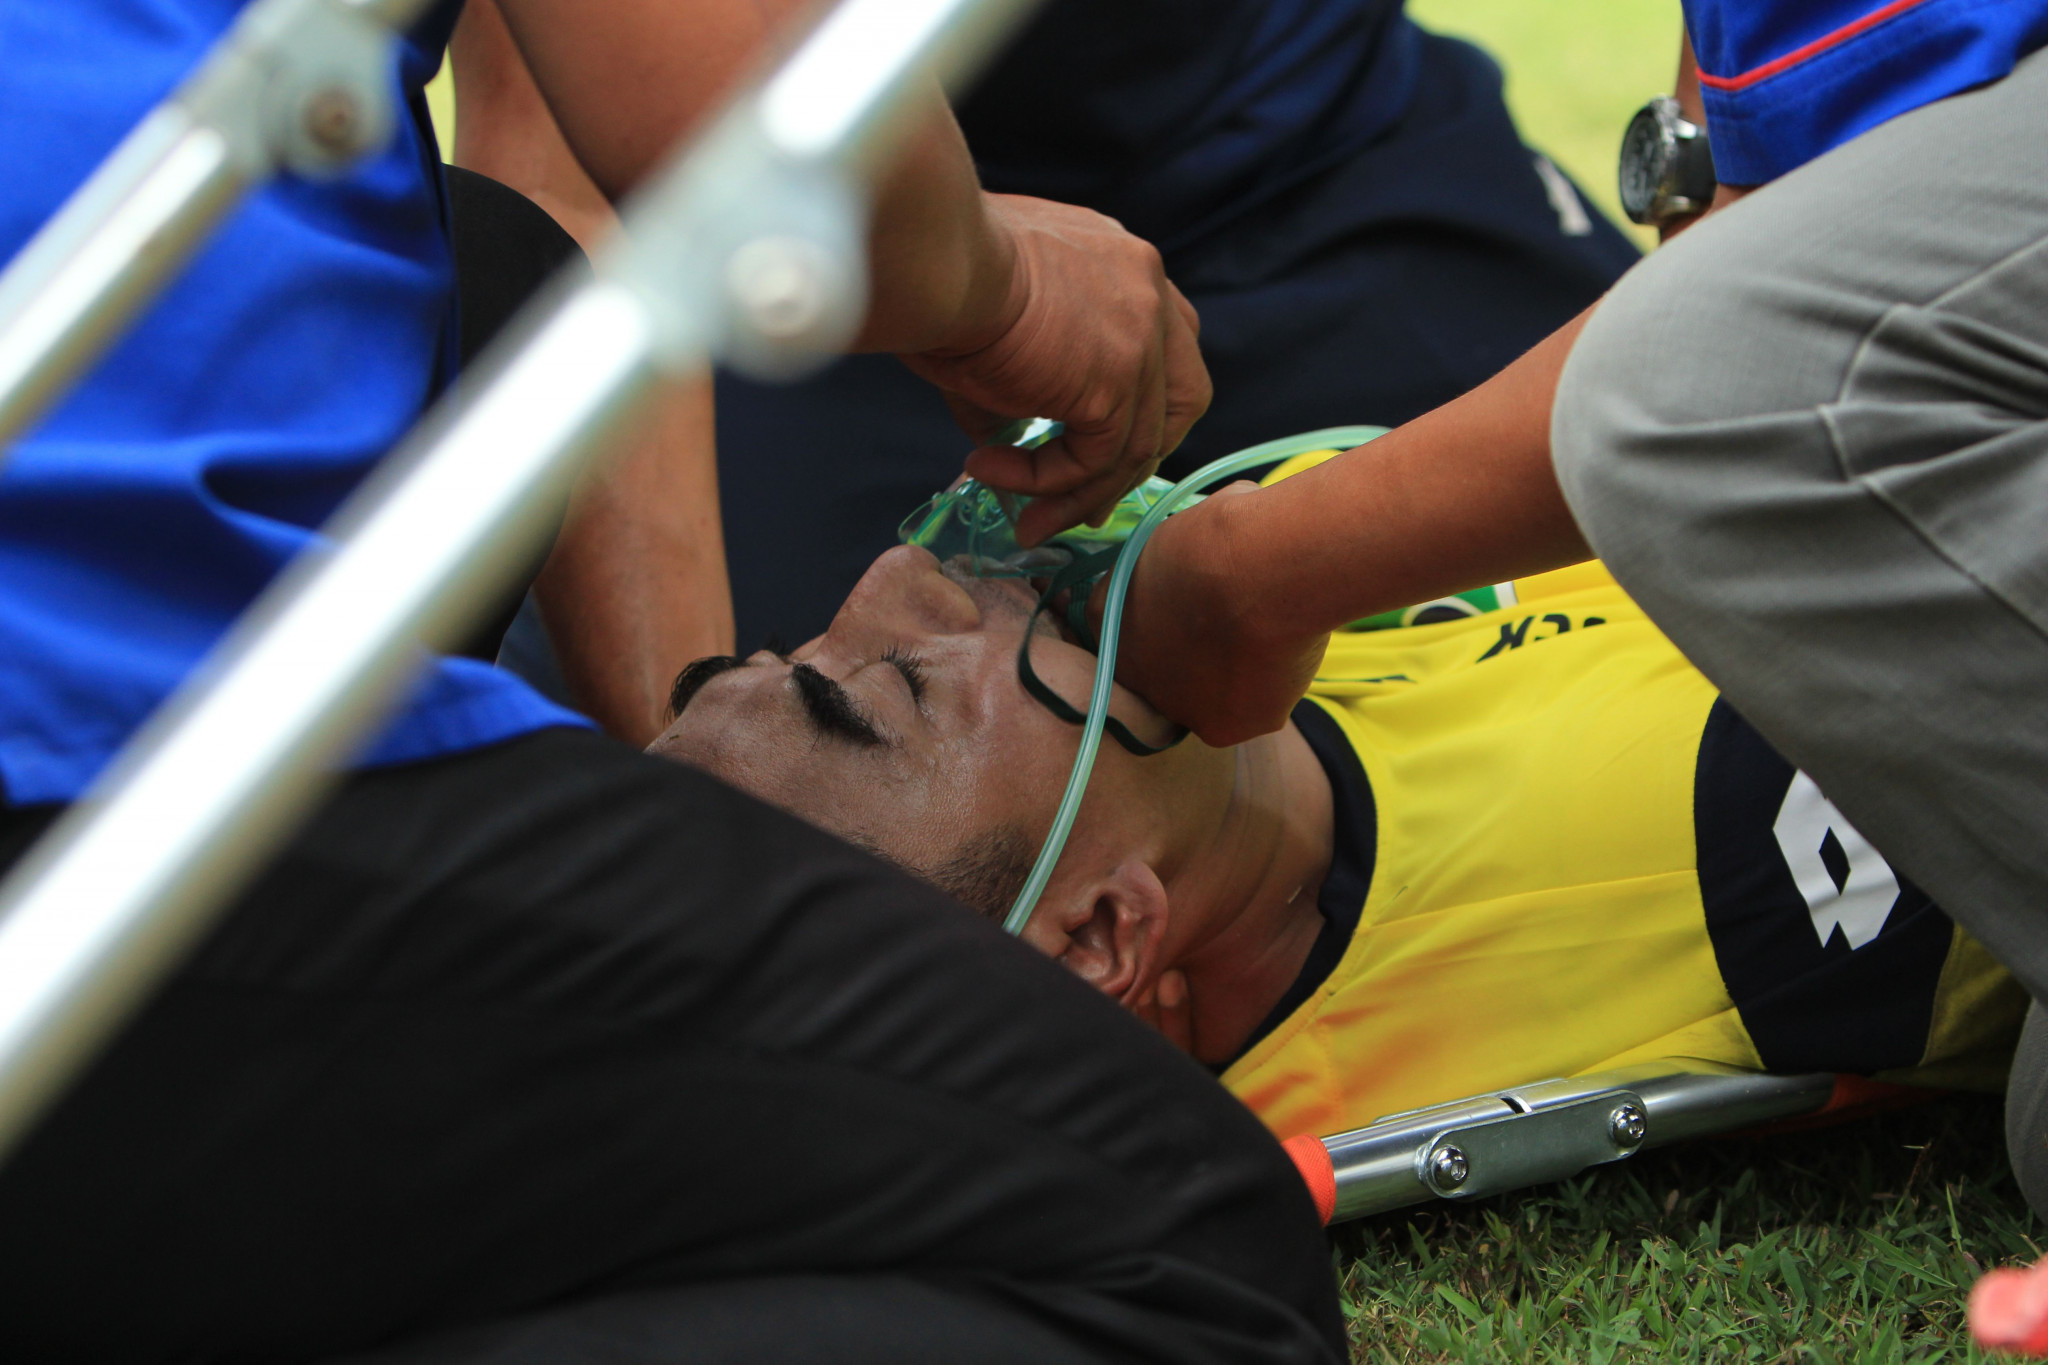 Indonesian goalkeeper dies following on-field clash